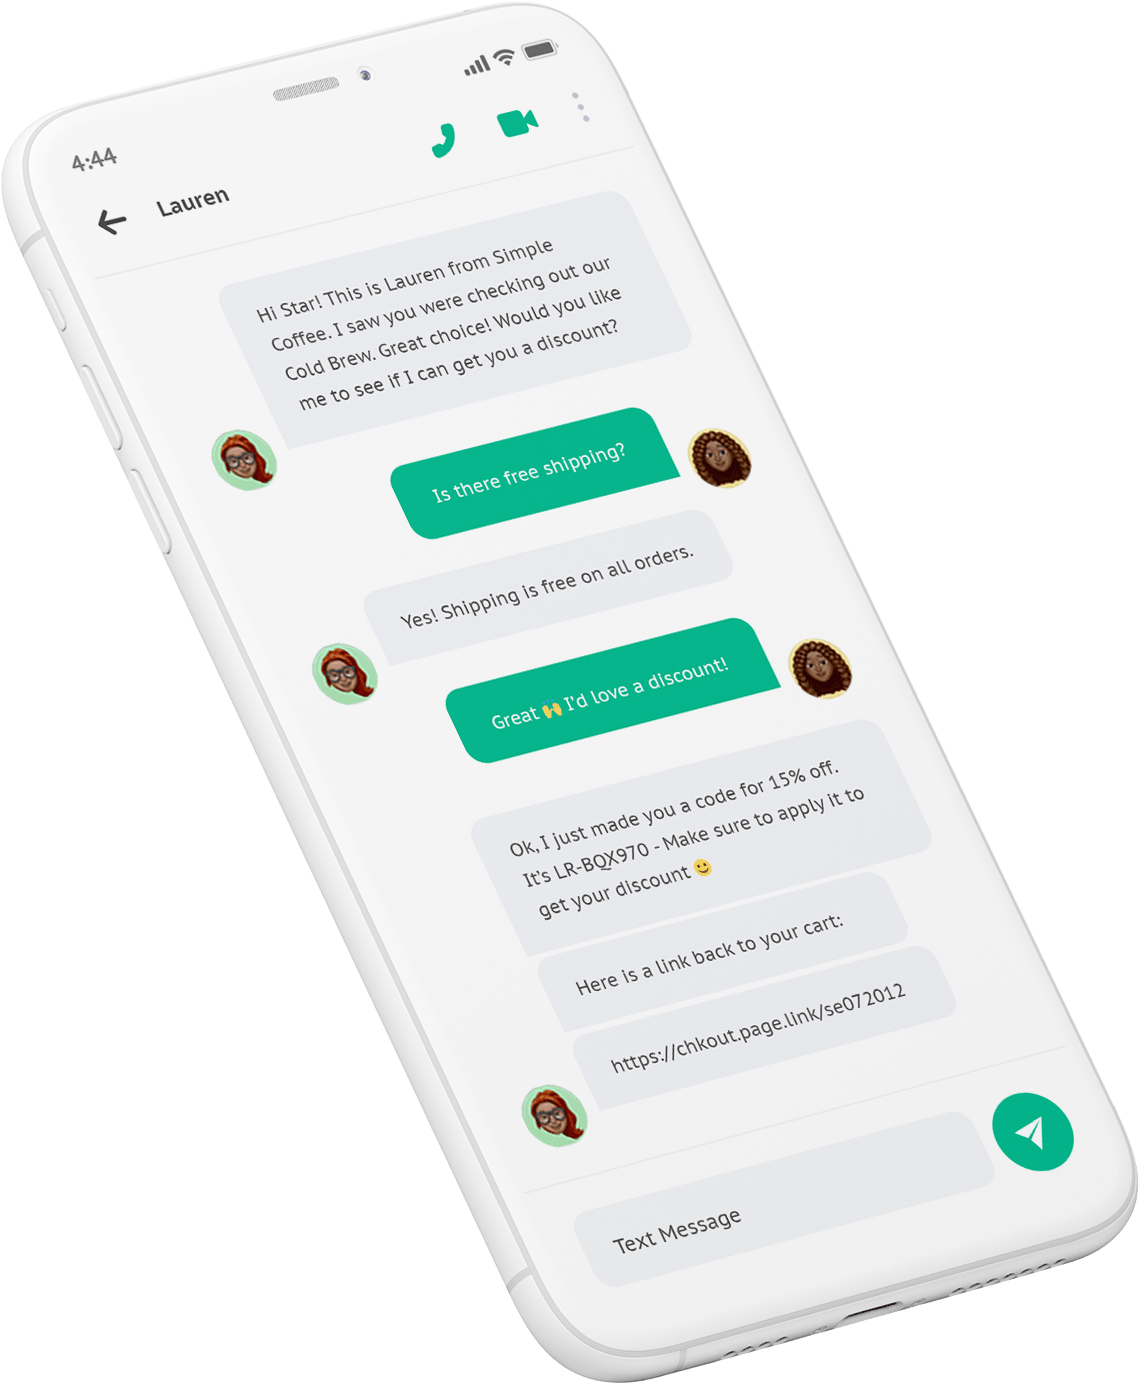 LiveRecover text conversation on mobile phone.